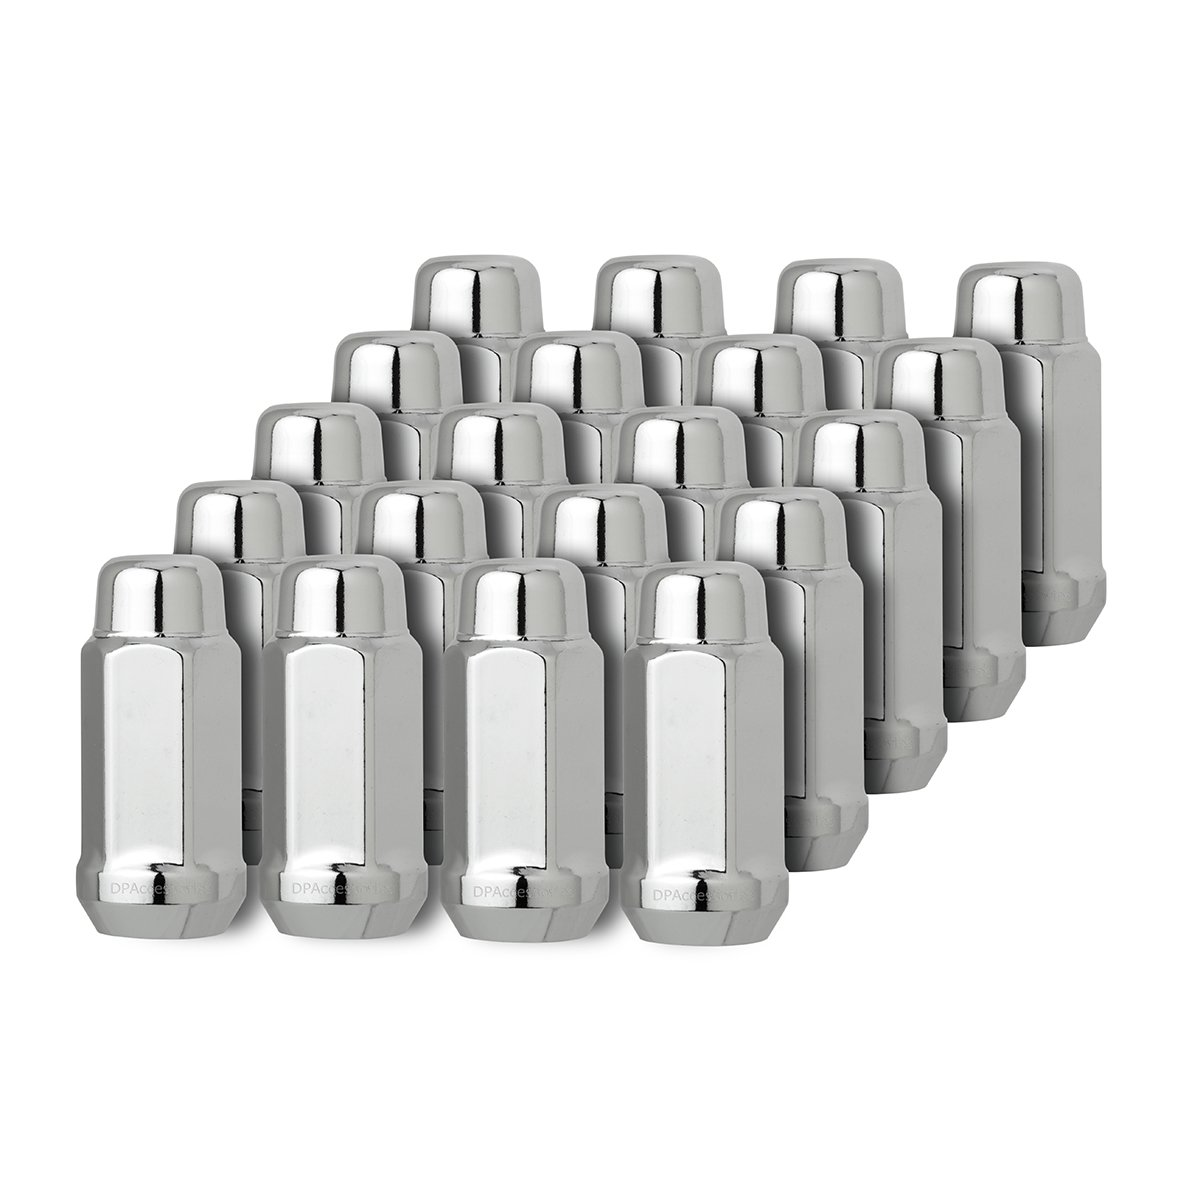 4 DXZ 20 Chrome 12x1.5 Closed End Bulge Acorn Lug Nuts 19mm Hex Wheel Lug Nut Cone Seat